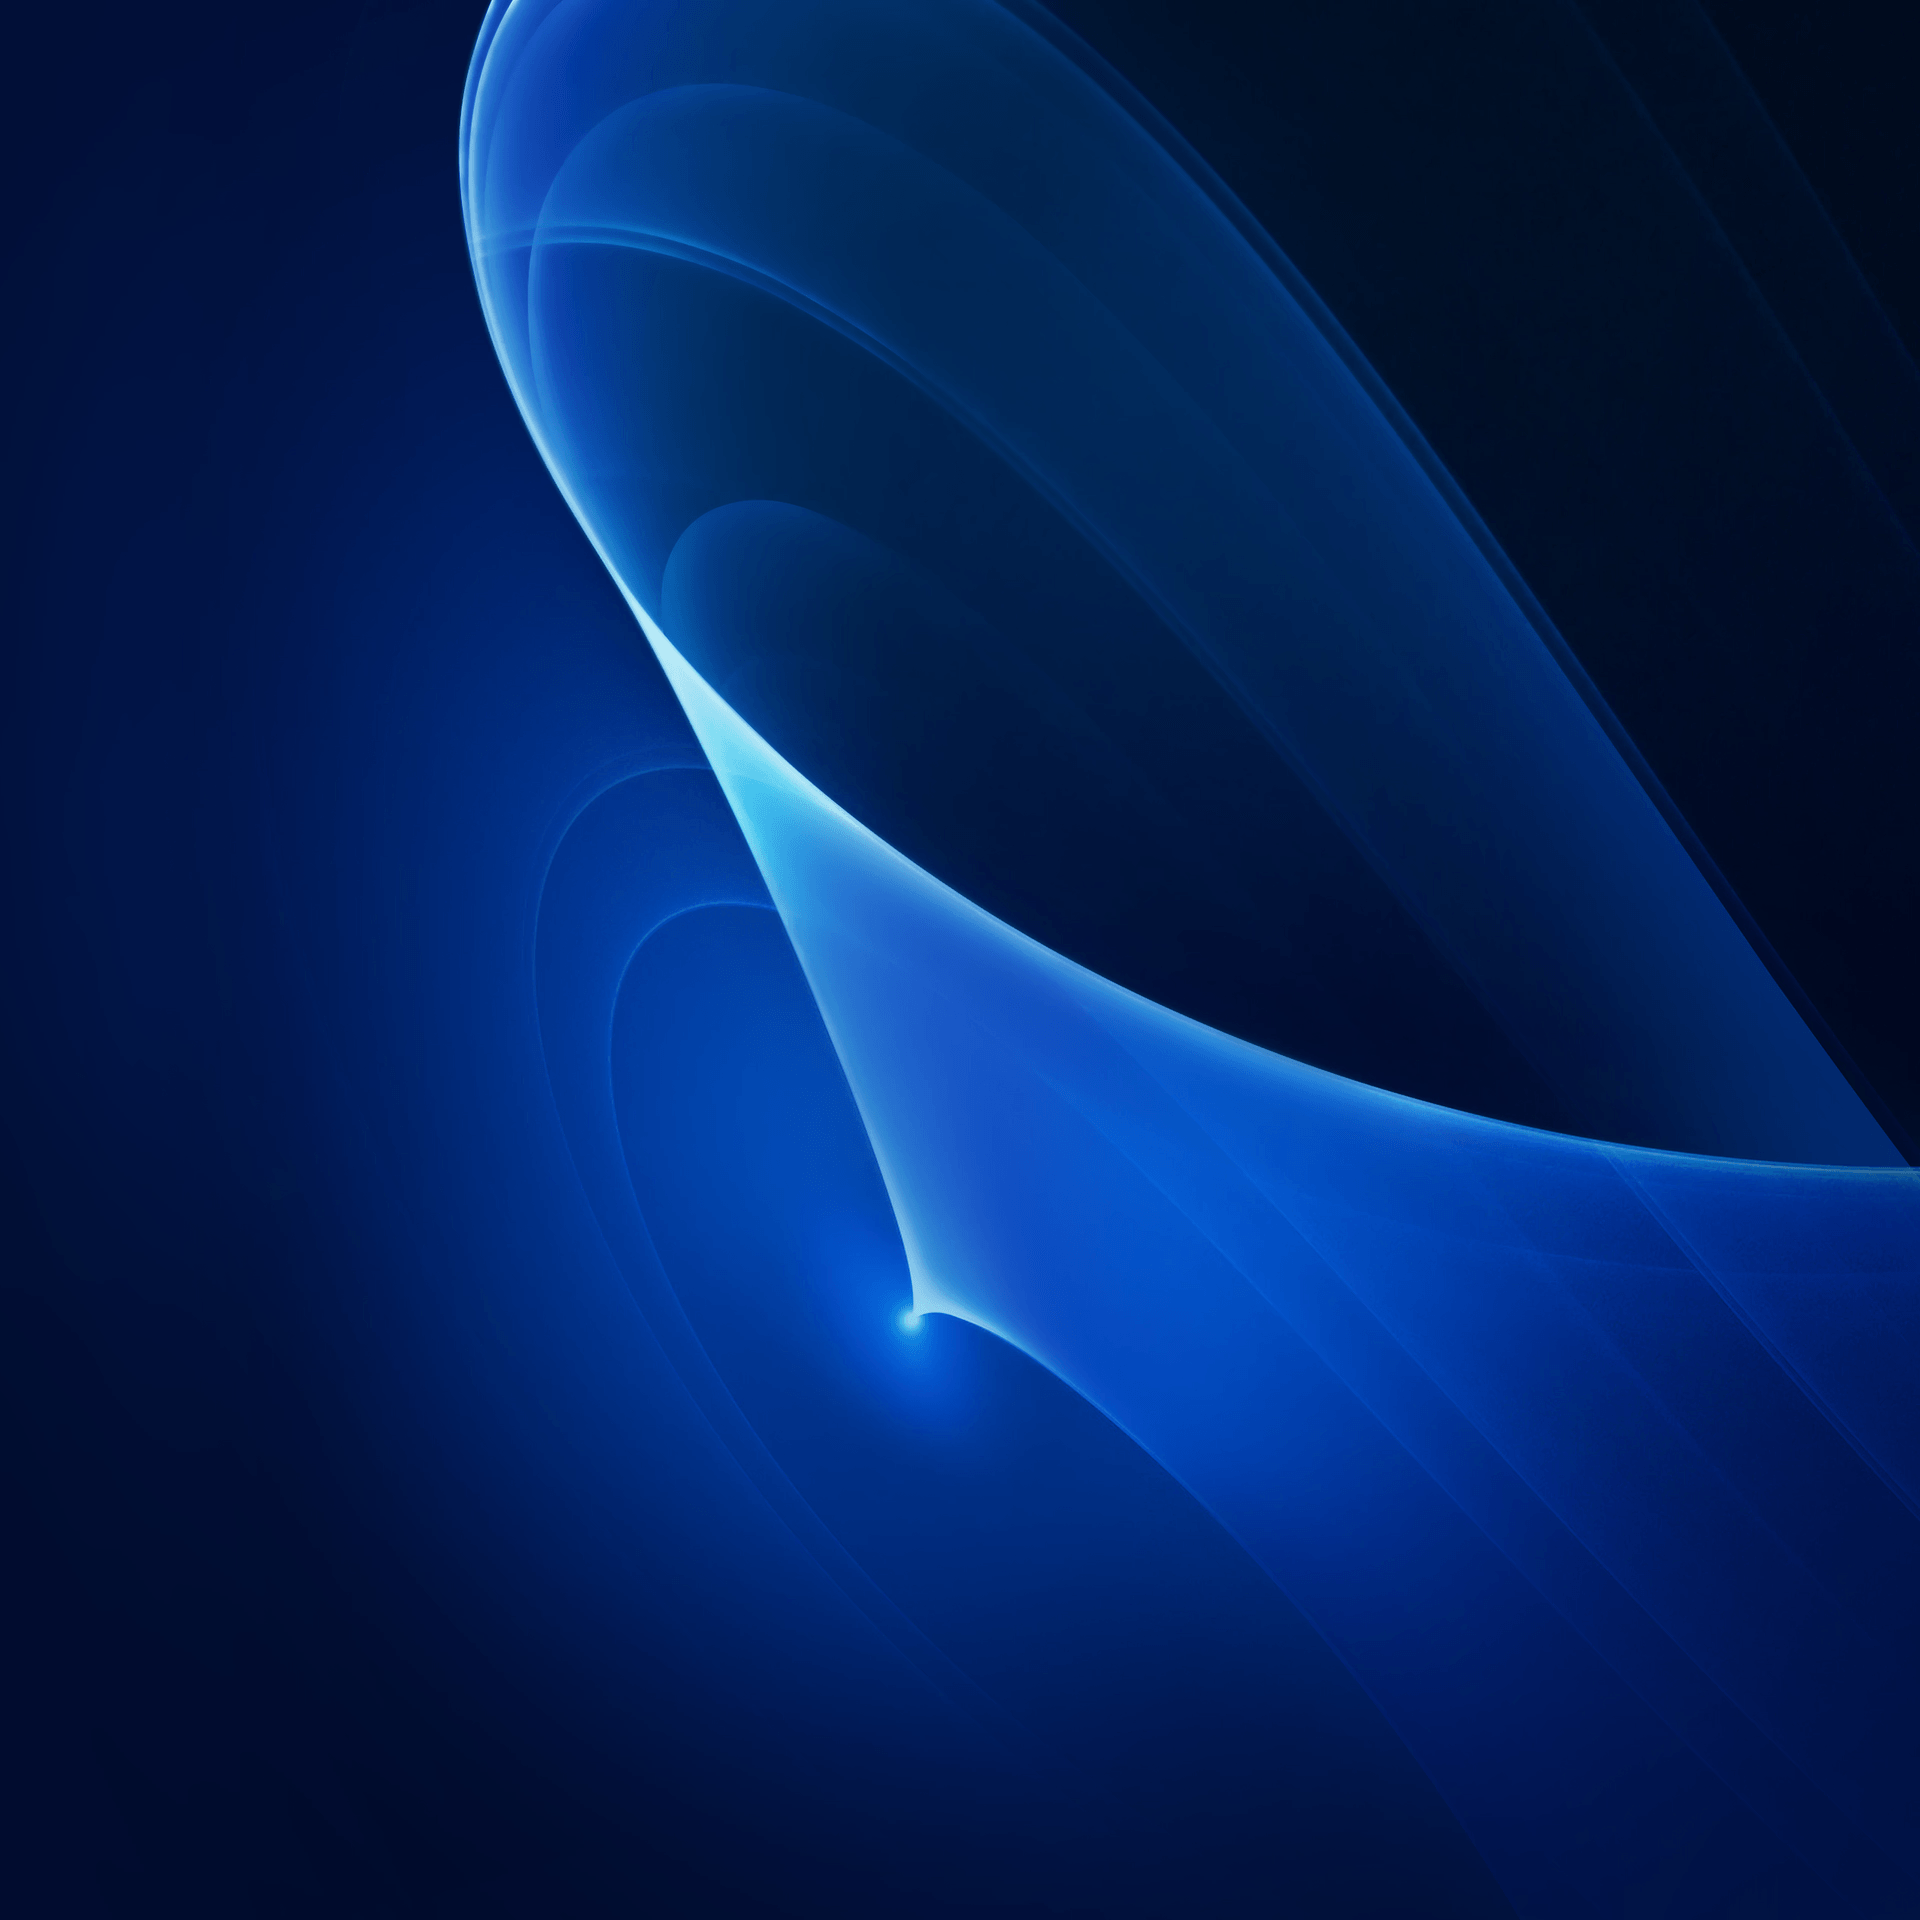 Samsung J3 Wallpapers Wallpaper Cave